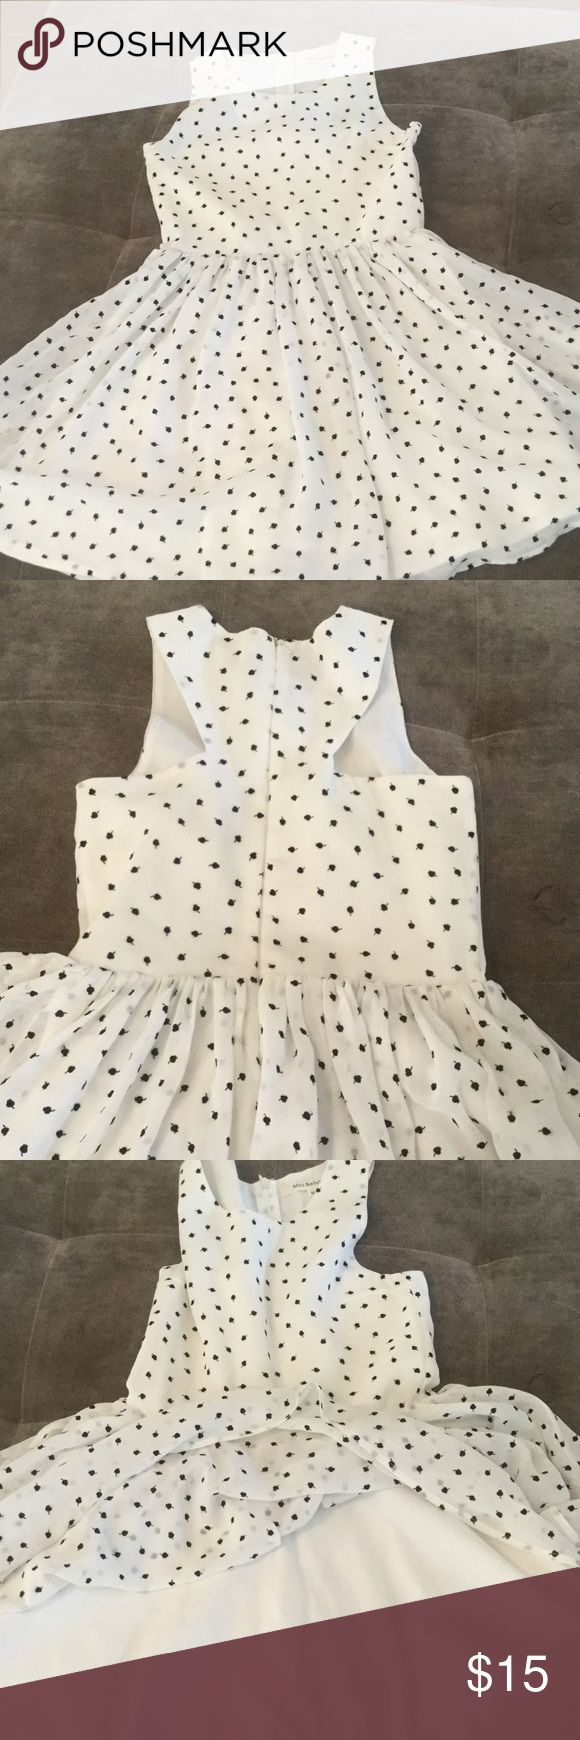 Girls Miss Behave Dress Size M Sweet like new dress perfect for Spring and Summer.  Size M.  Sizing is like 8-10.  Is fully lined and has a thin poly shell which makes the dress so delicate looking.  It has sort of a racer back cut and zipper back.  No stains or tears. Miss Behave Dresses